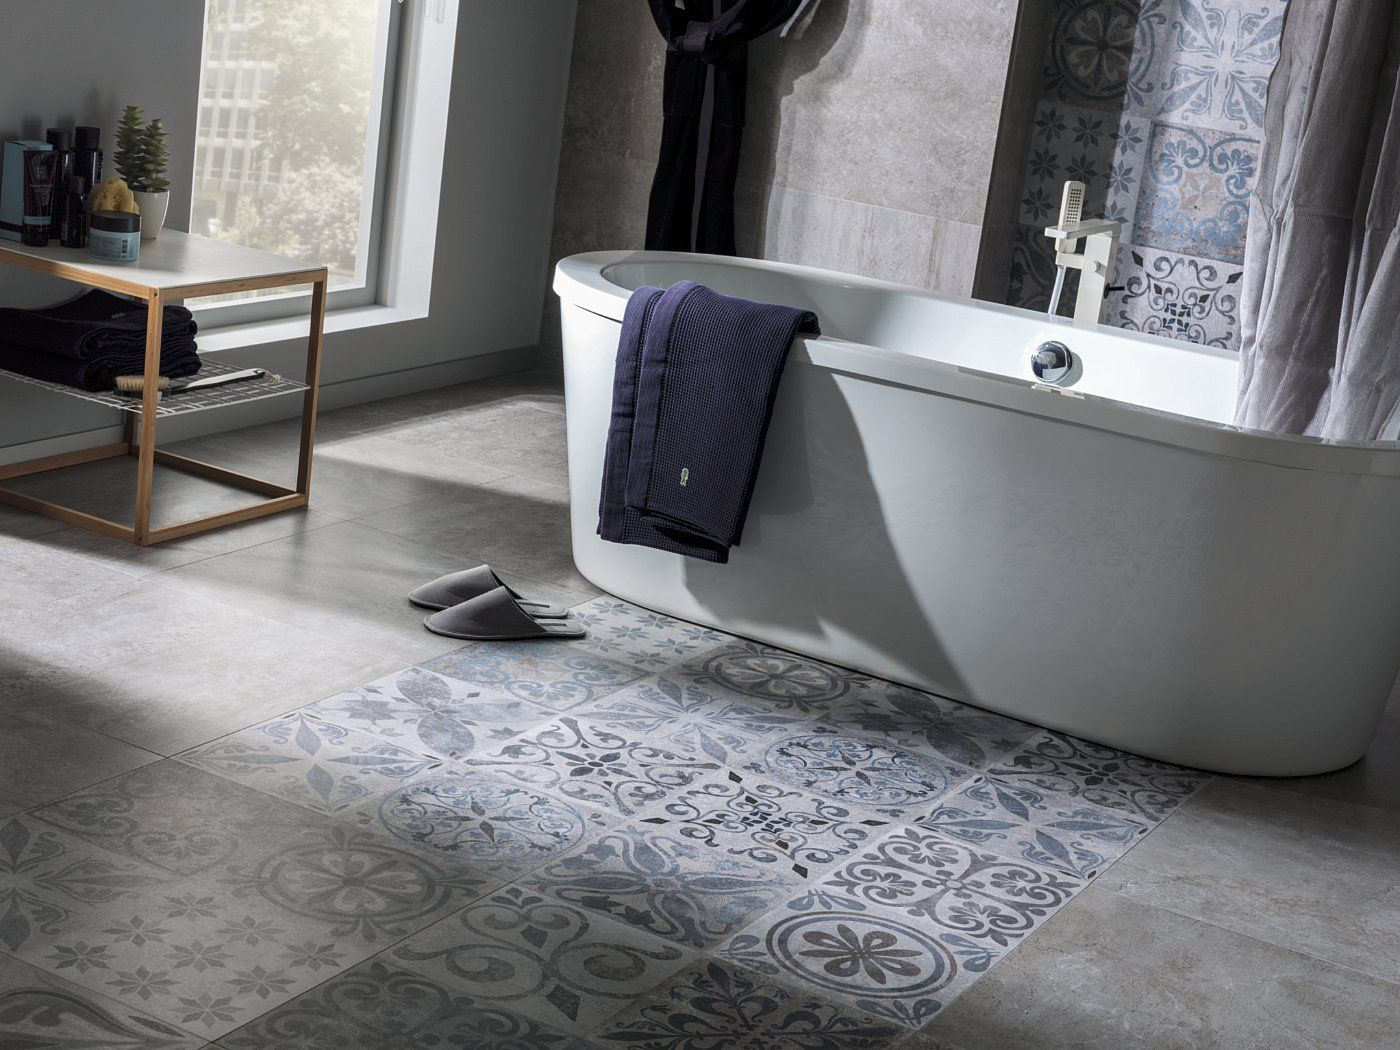 Allways cabin contemporary bathroom perth by ceramo tiles - Porcelanosa Antique Silver Patterned Feature Tile Available At Ceramo